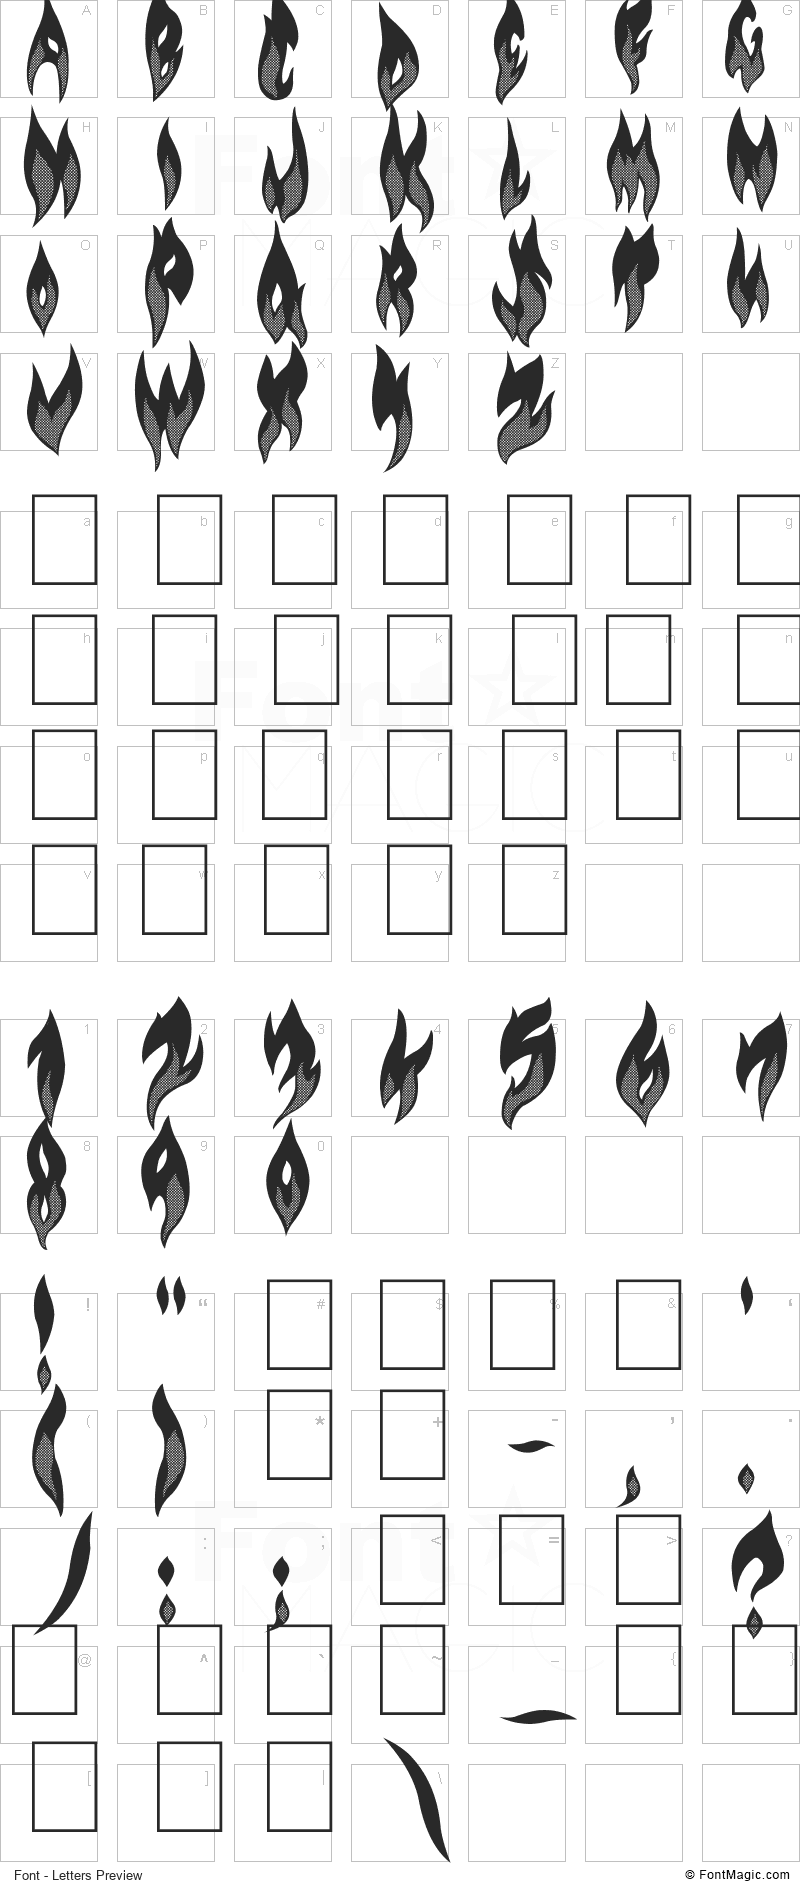 FLAME ON! Font - All Latters Preview Chart